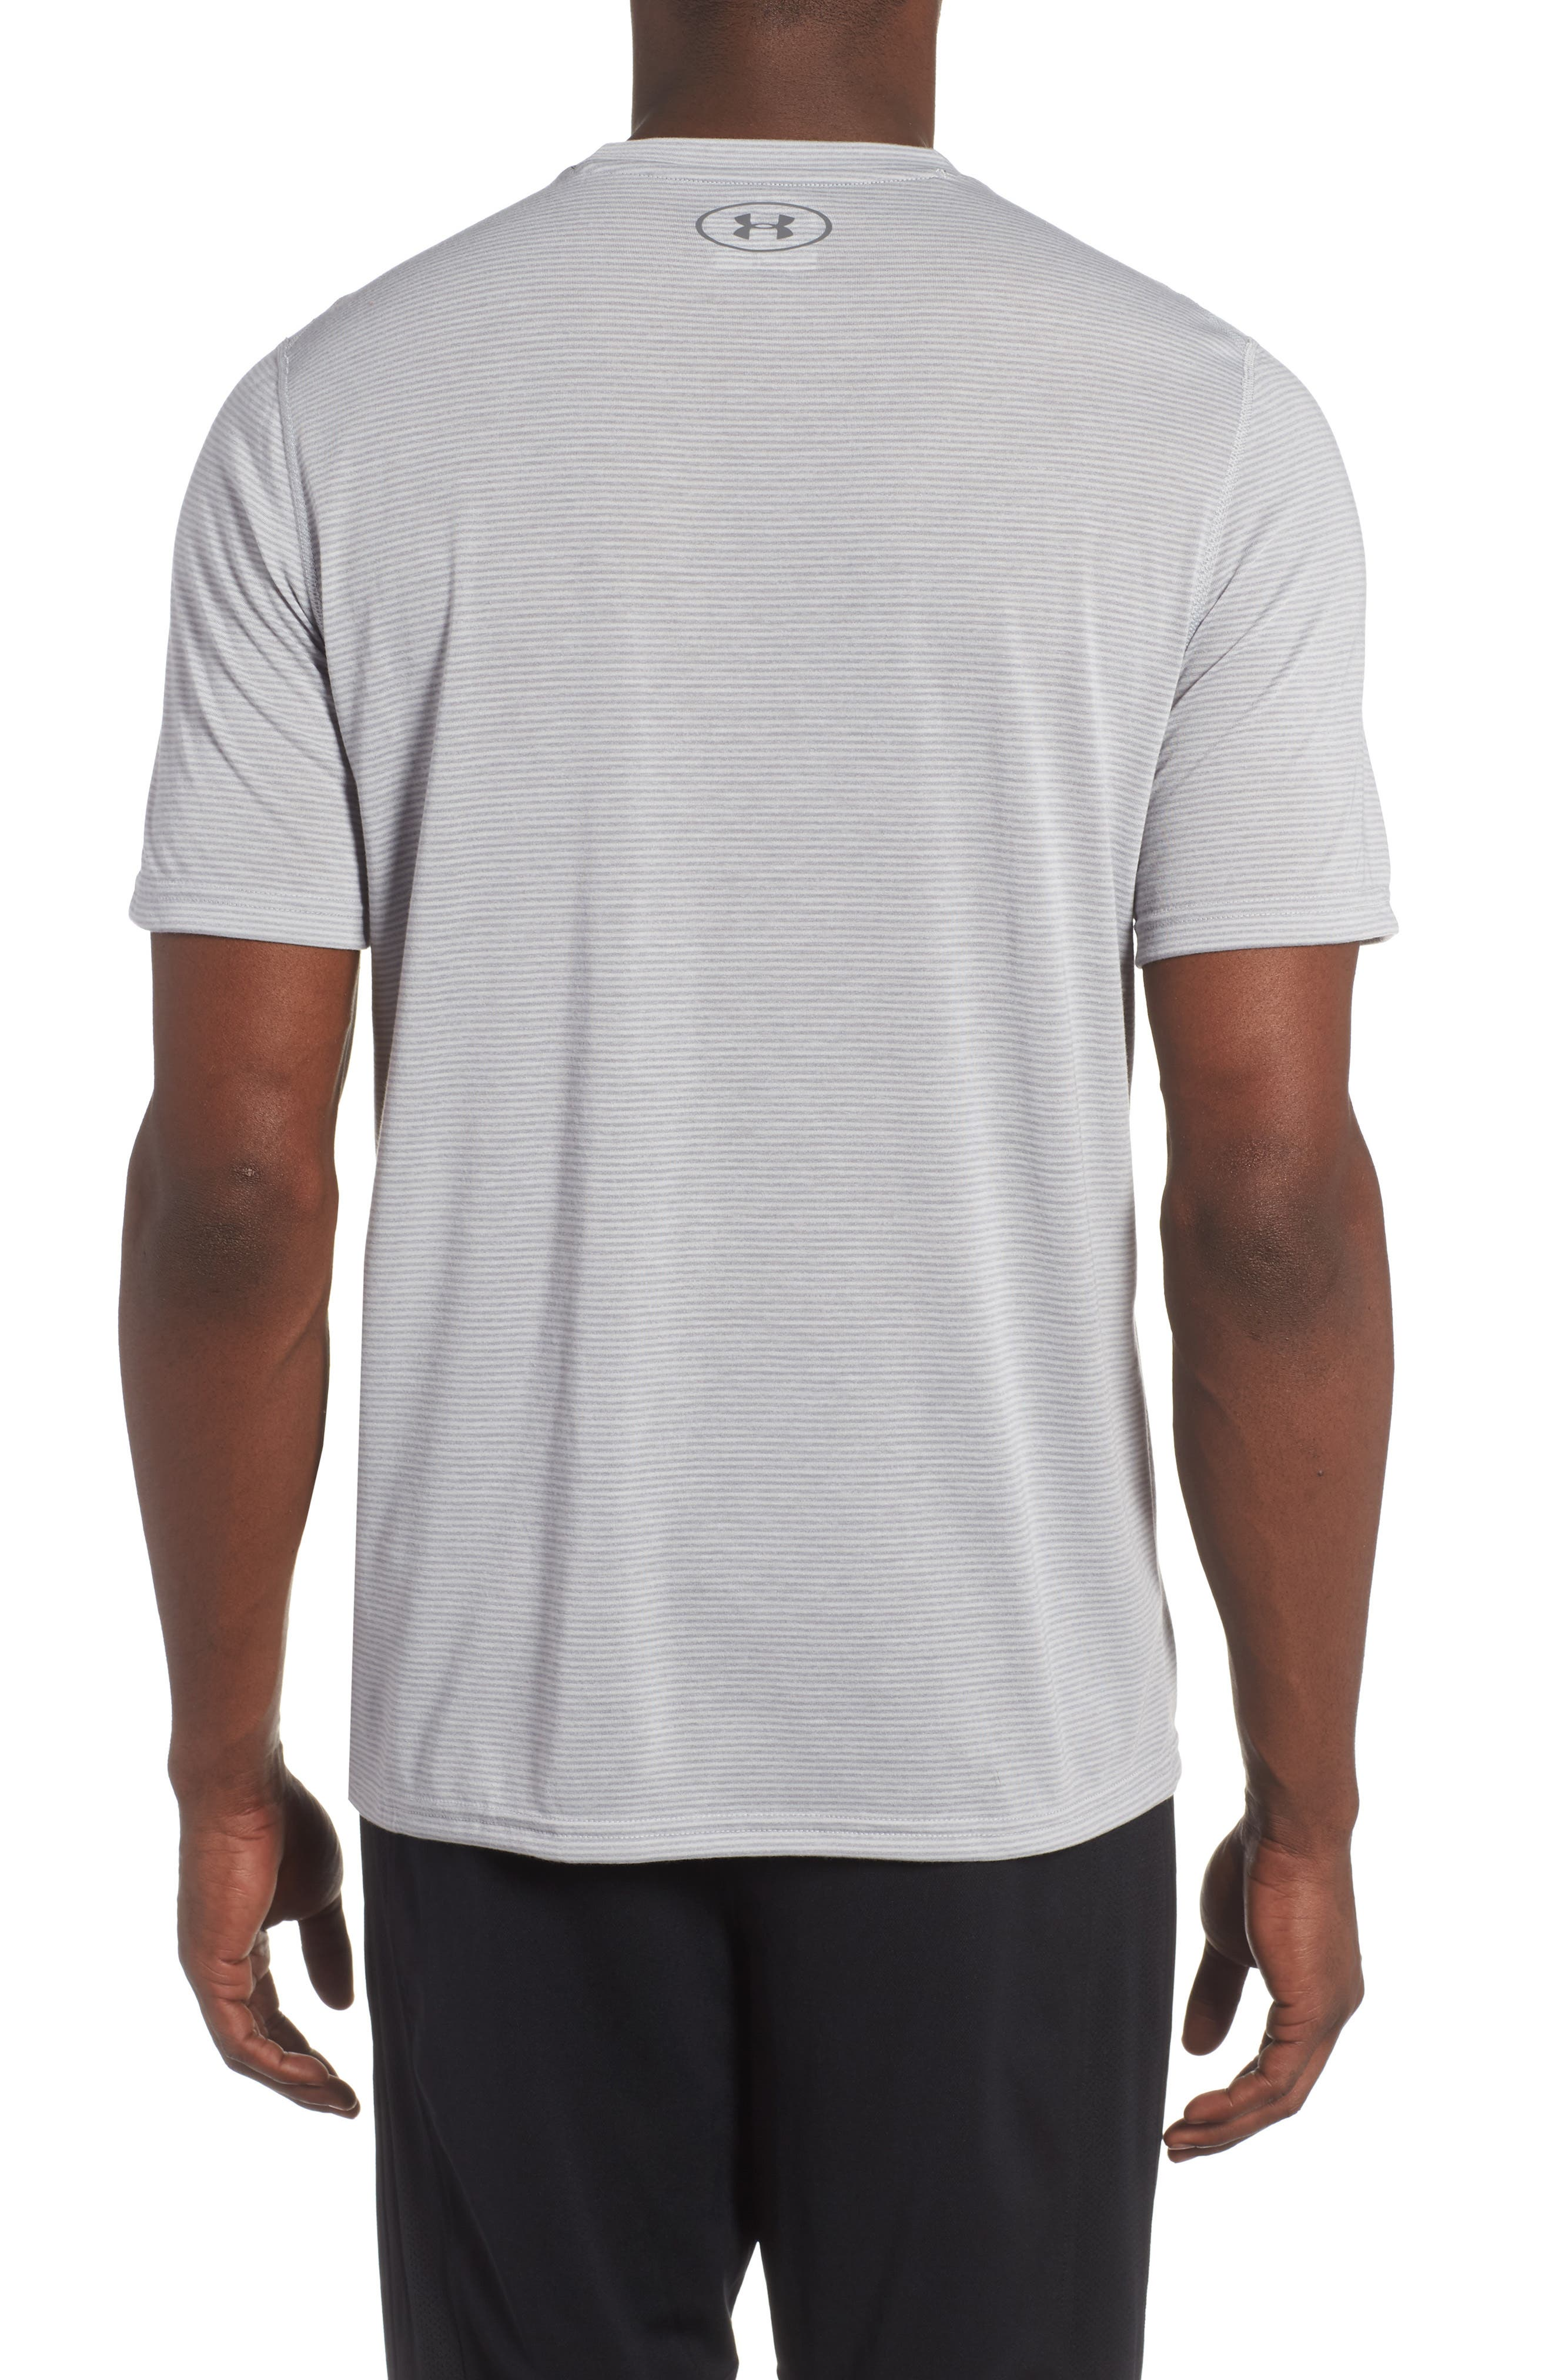 Threadborne Siro Regular Fit T-Shirt,                             Alternate thumbnail 2, color,                             Overcast Gray/ Graphite